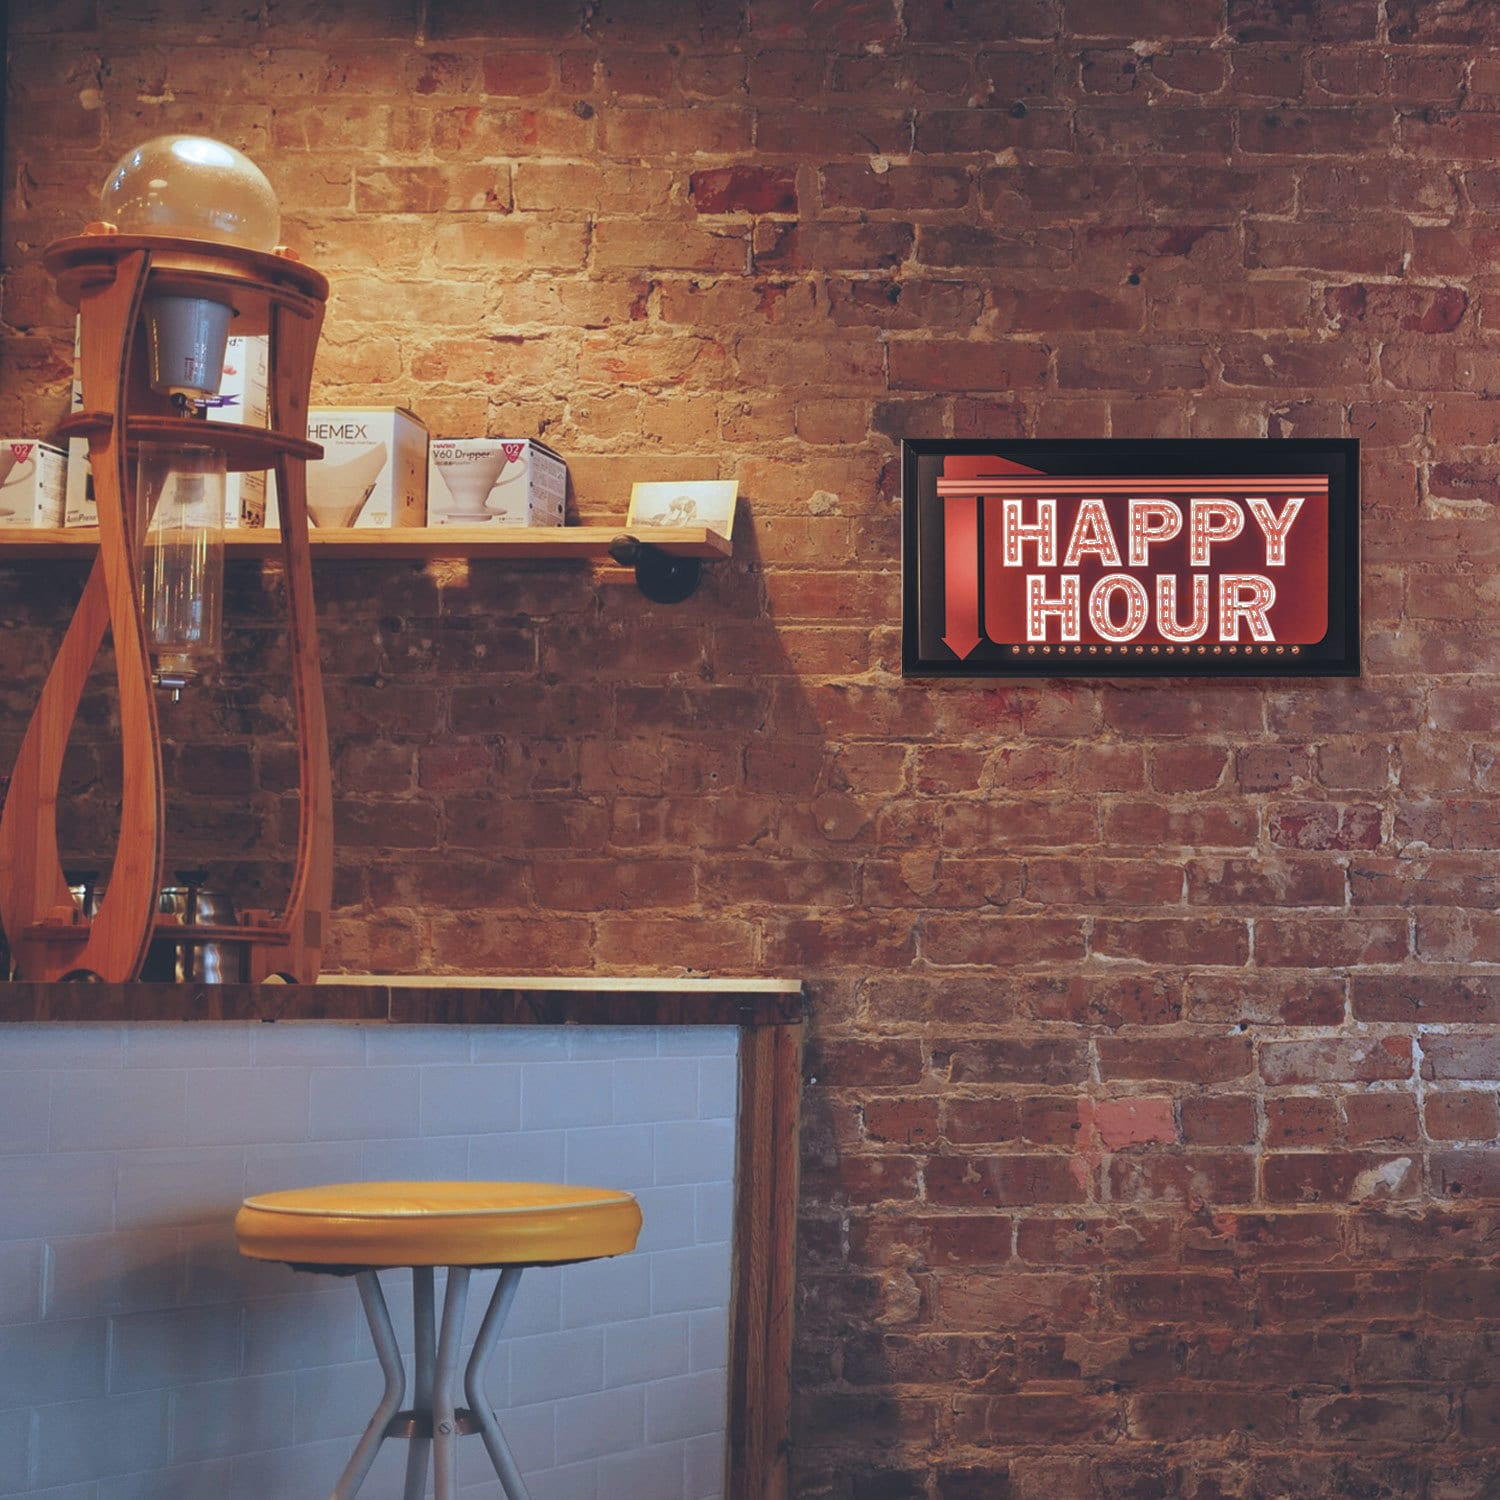 American Art Decor Happy Hour Down Arrow Framed Man Cave Marquee Led Signs Overstock 16069623